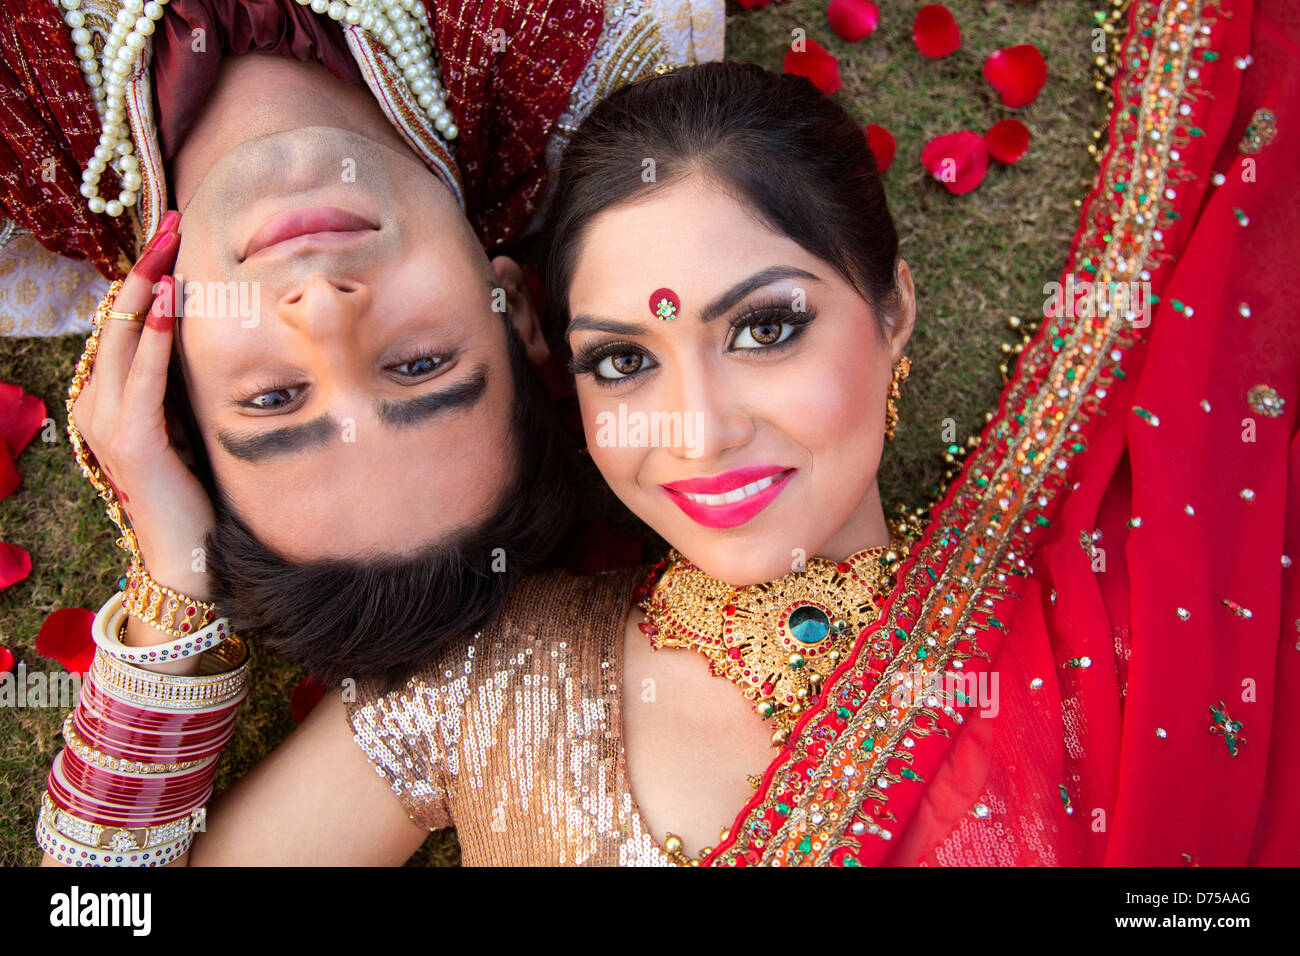 Indian Bride And Groom In Traditional Wedding Dress Posing